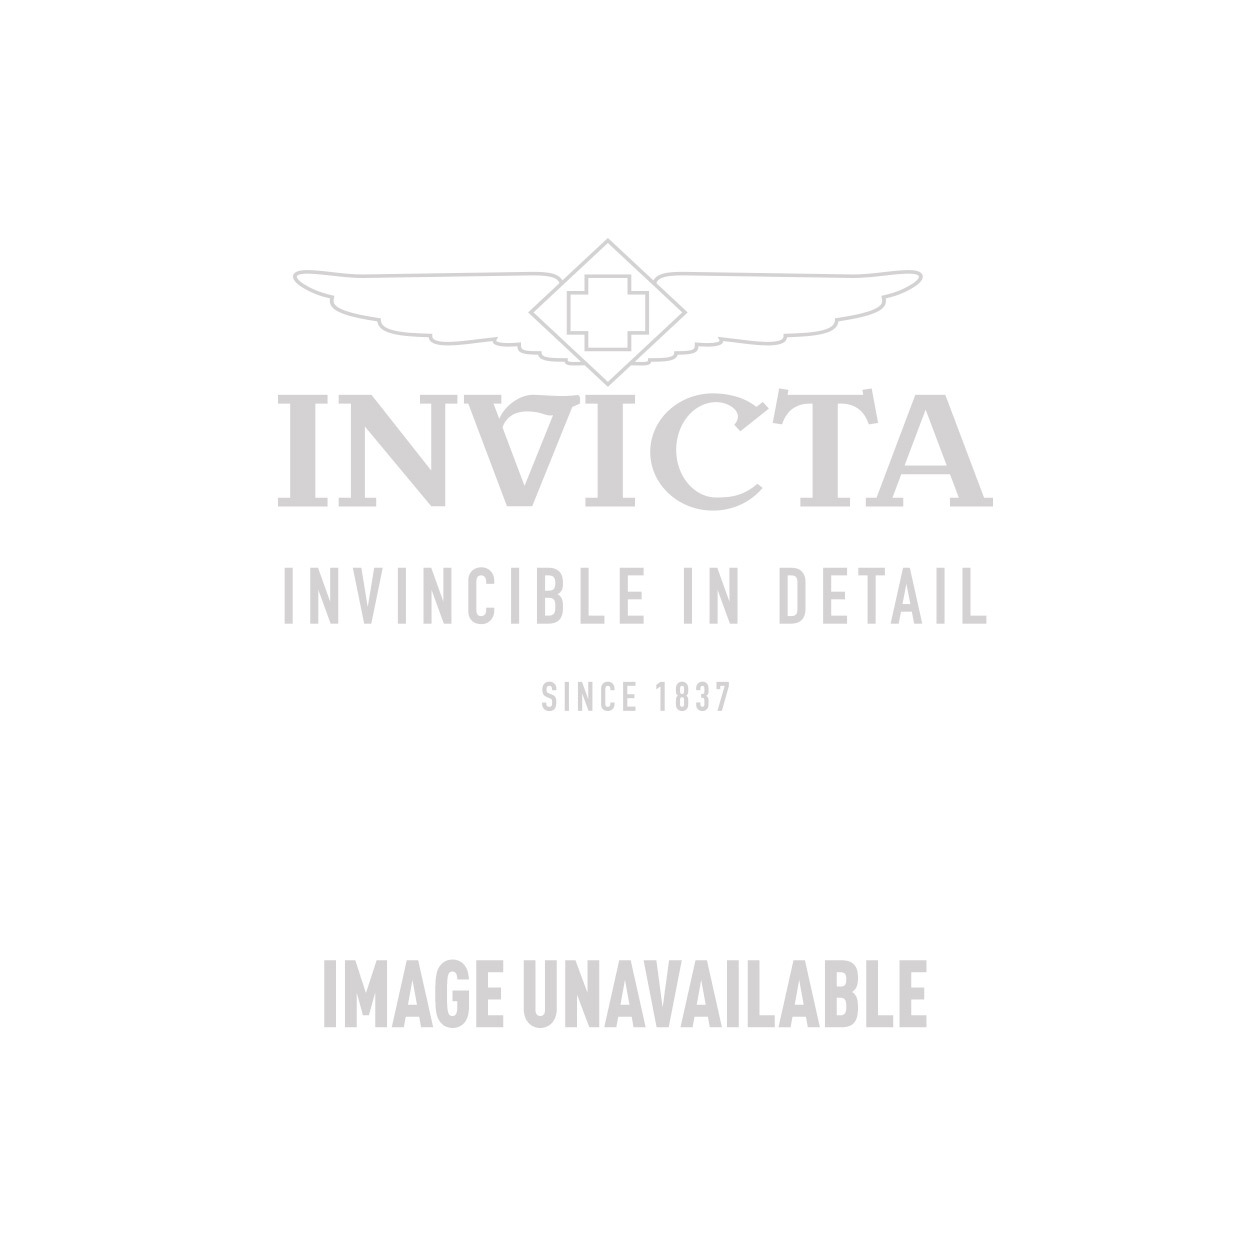 Invicta Angel Swiss Movement Quartz Watch - Gold case with Gold tone Stainless Steel band - Model 12551